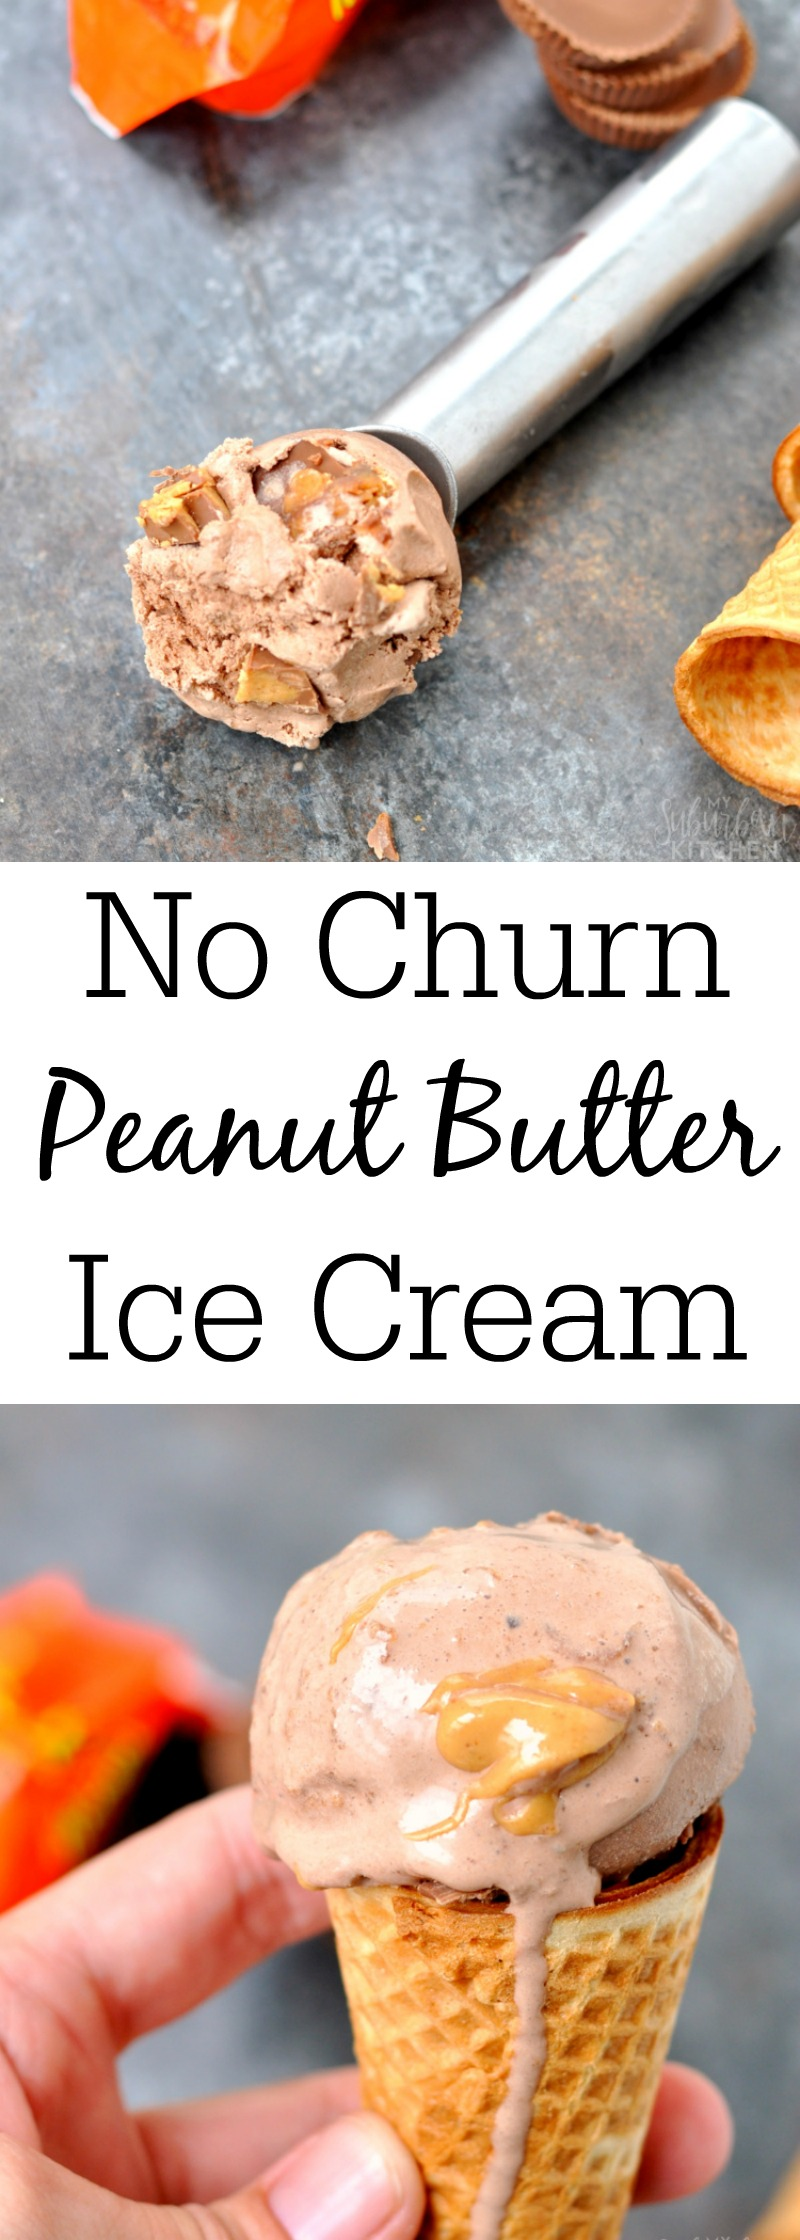 No Churn Peanut Butter Chocolate Ice Cream